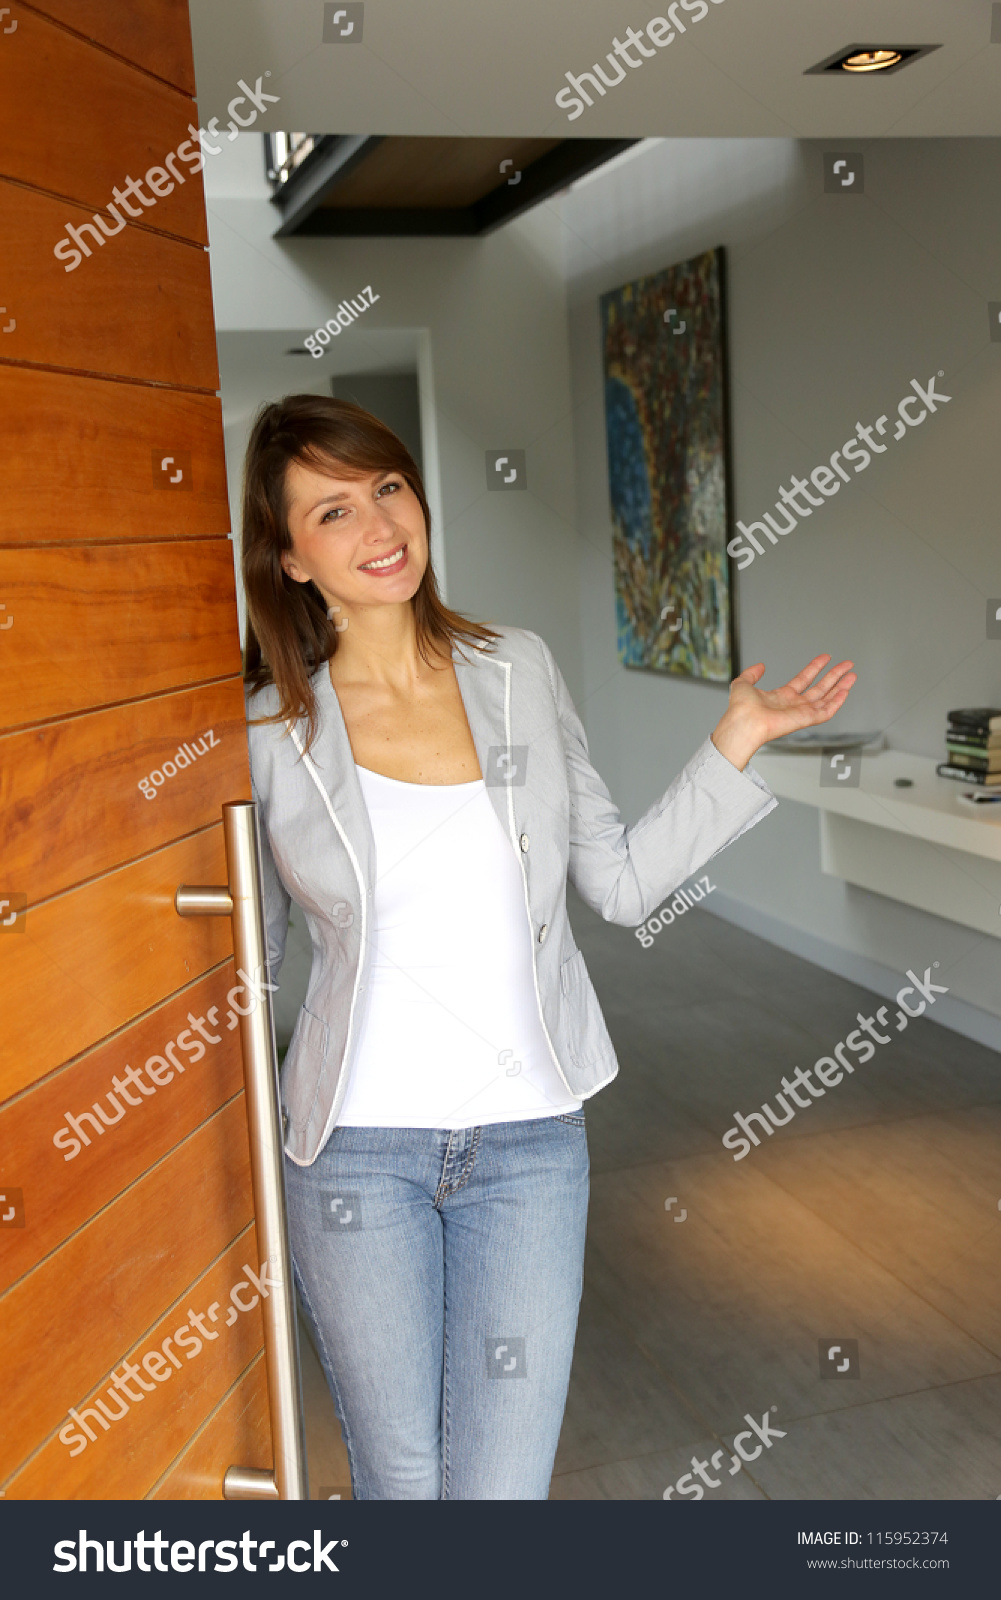 Image result for a lady opening the door